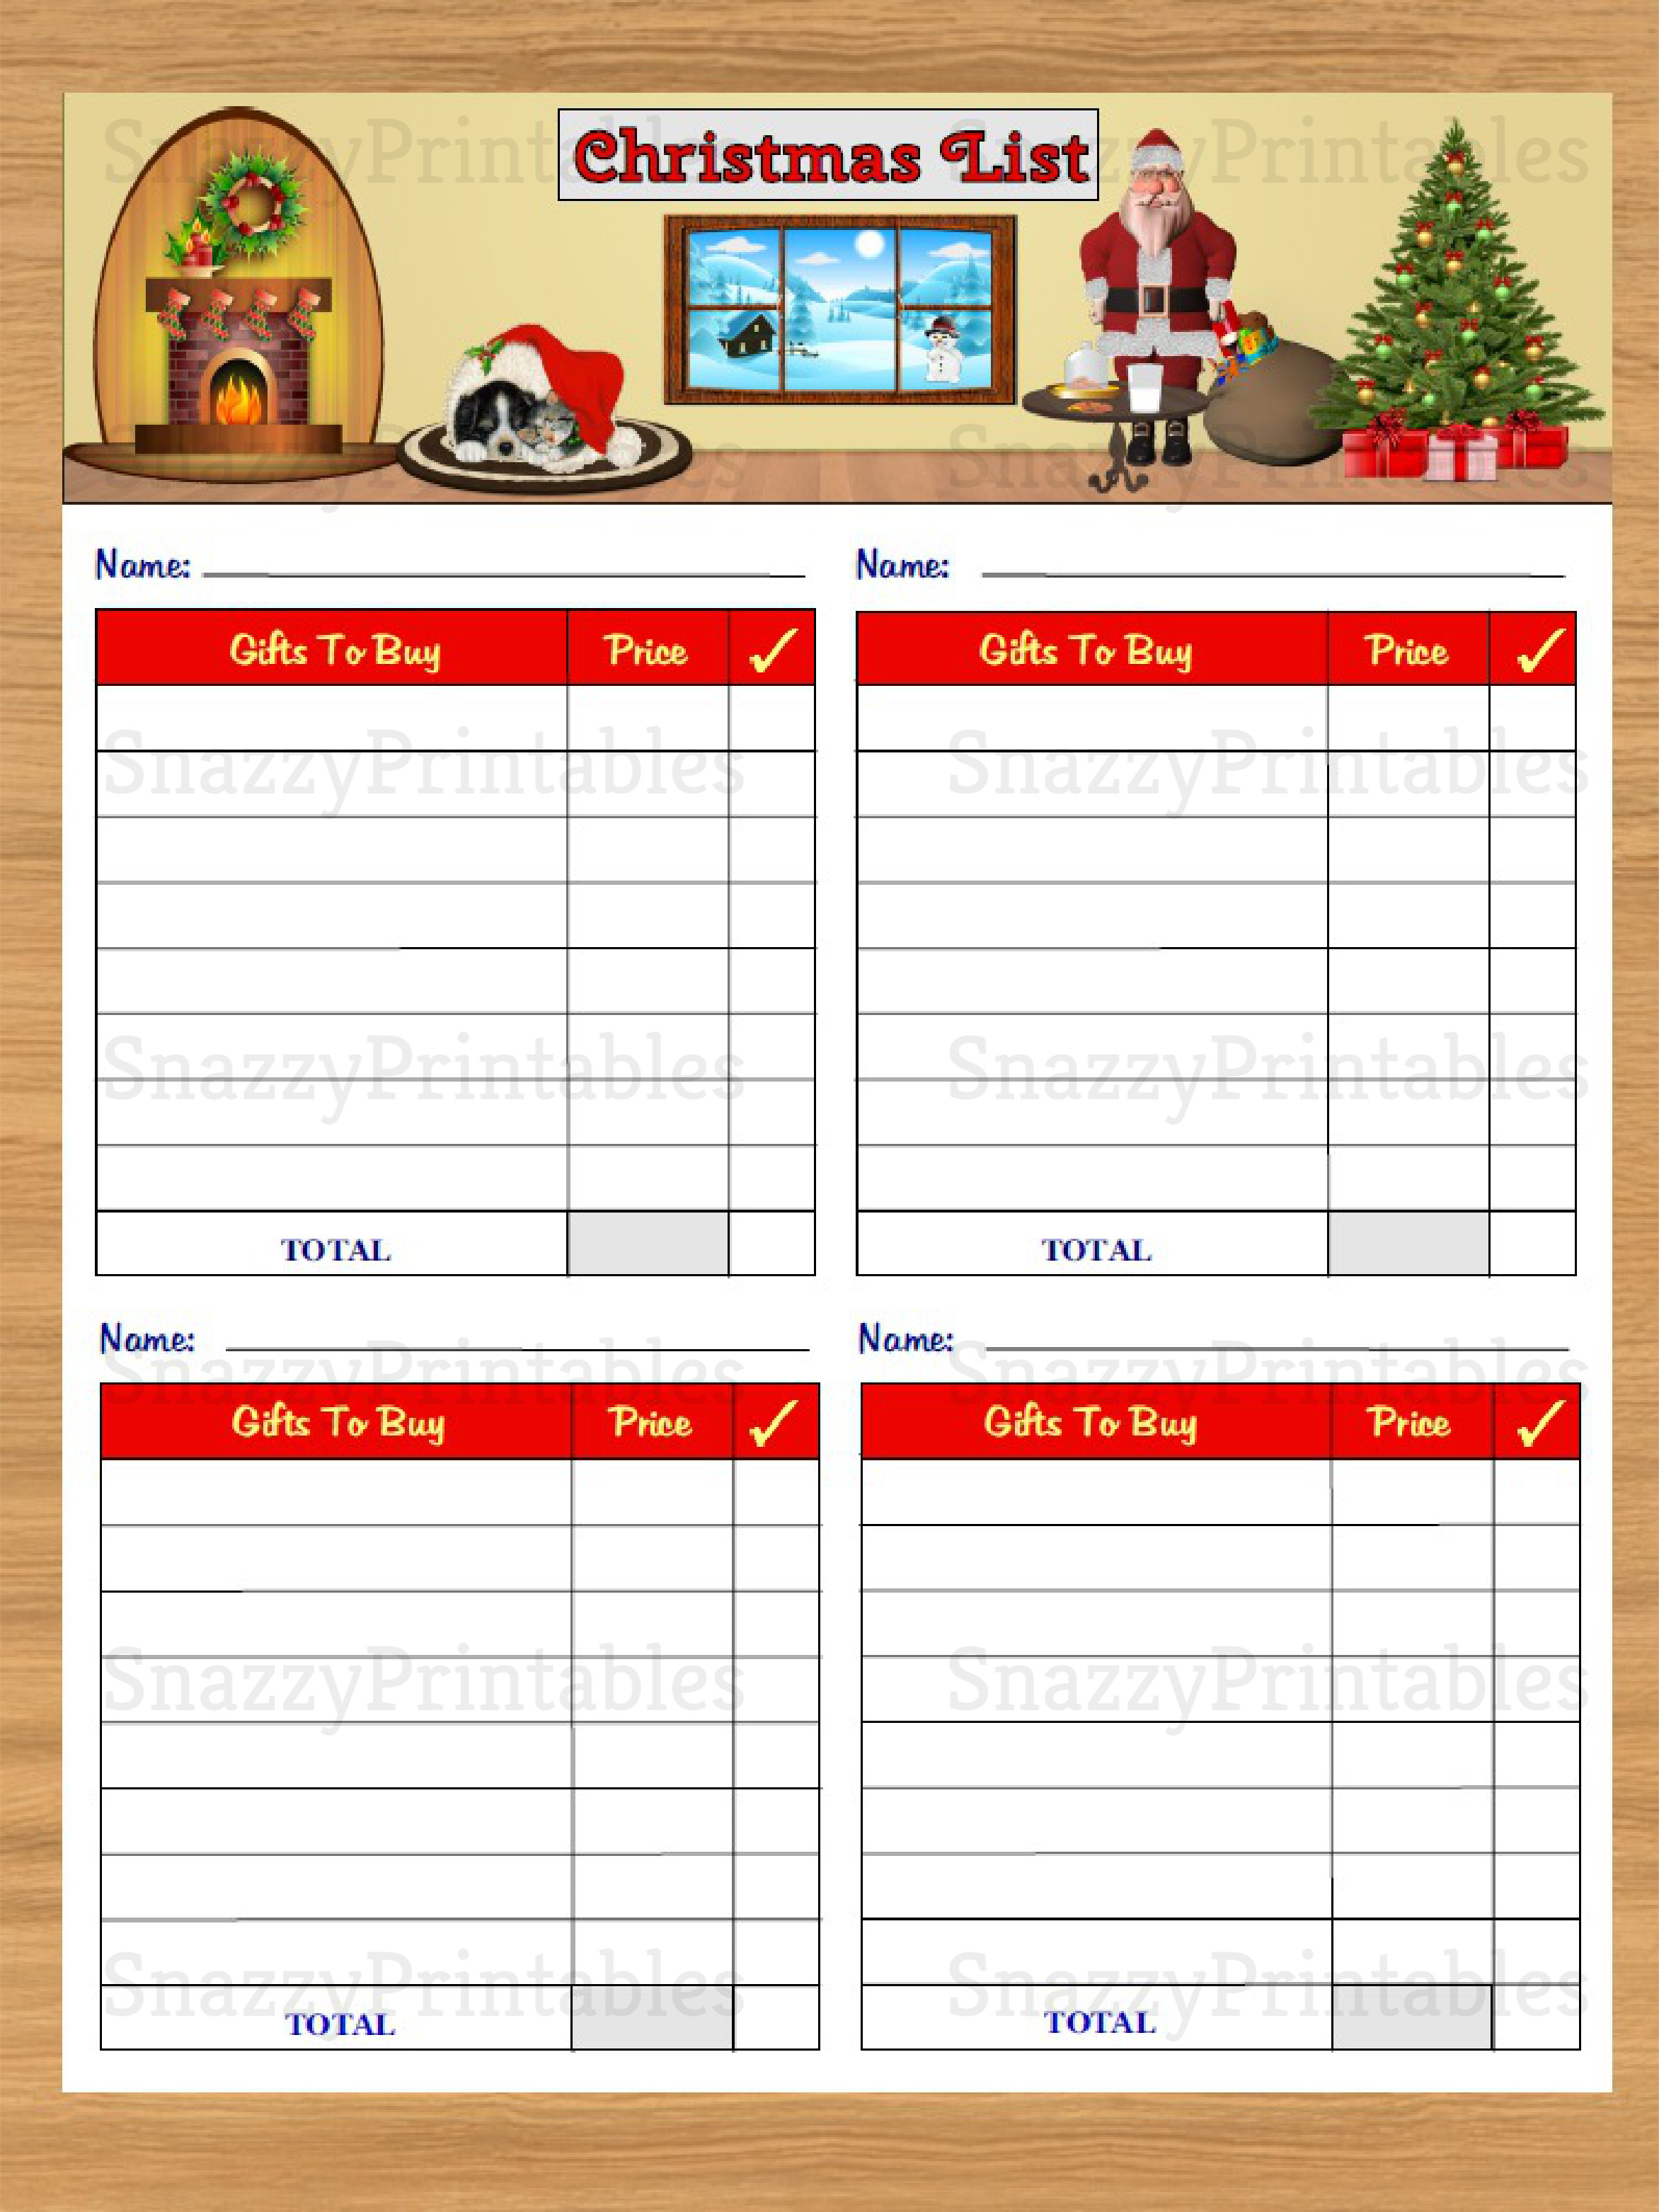 Christmas Gift List Printable - Instant Download PDF